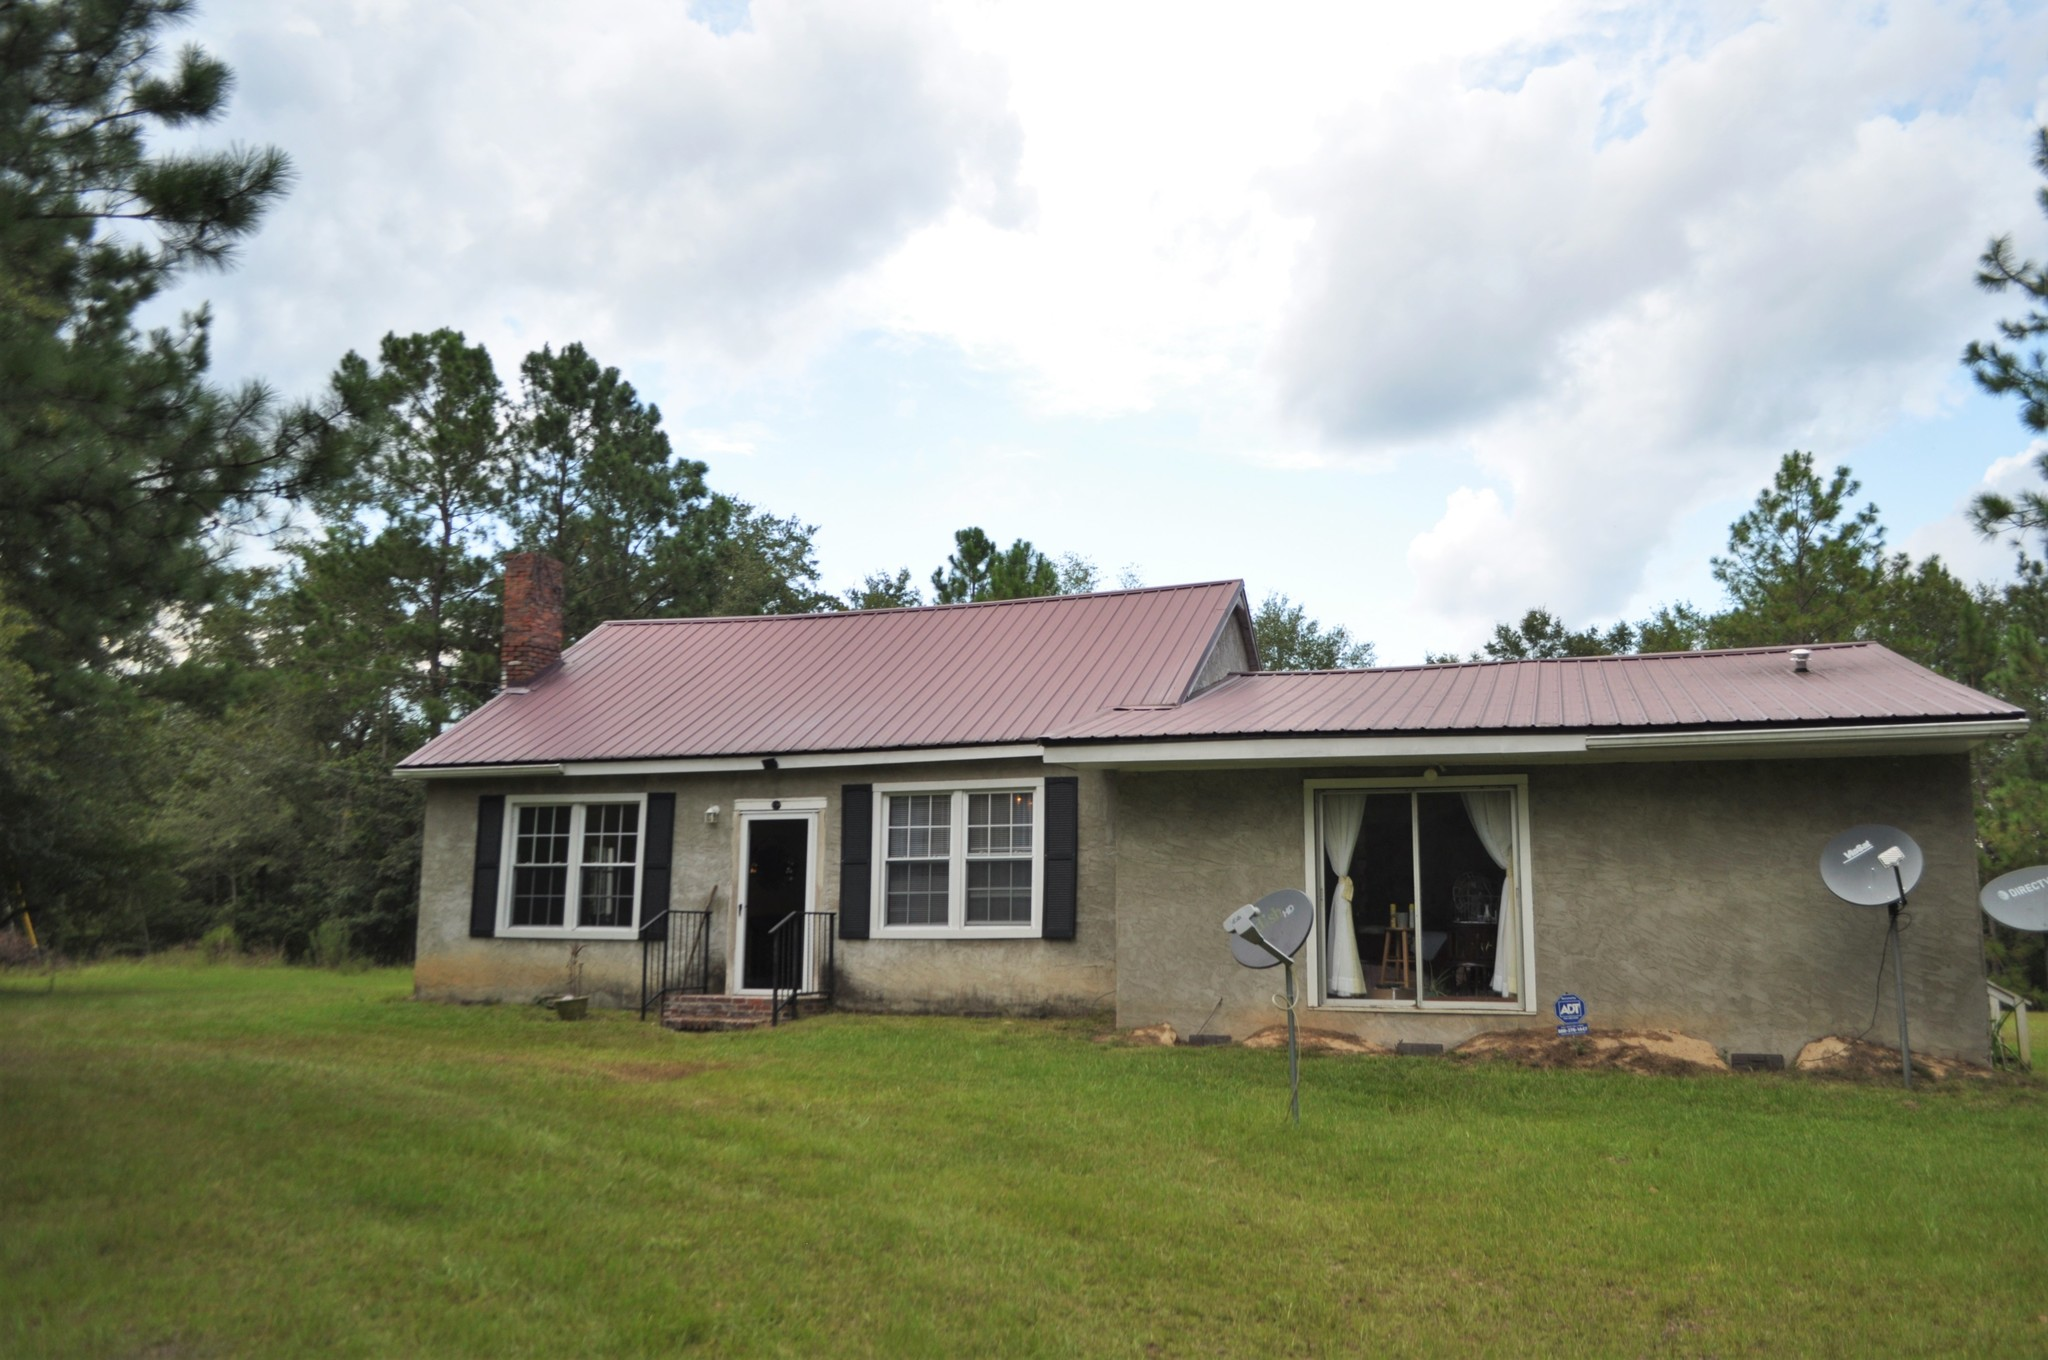 3-Bedroom House In Fitzgerald